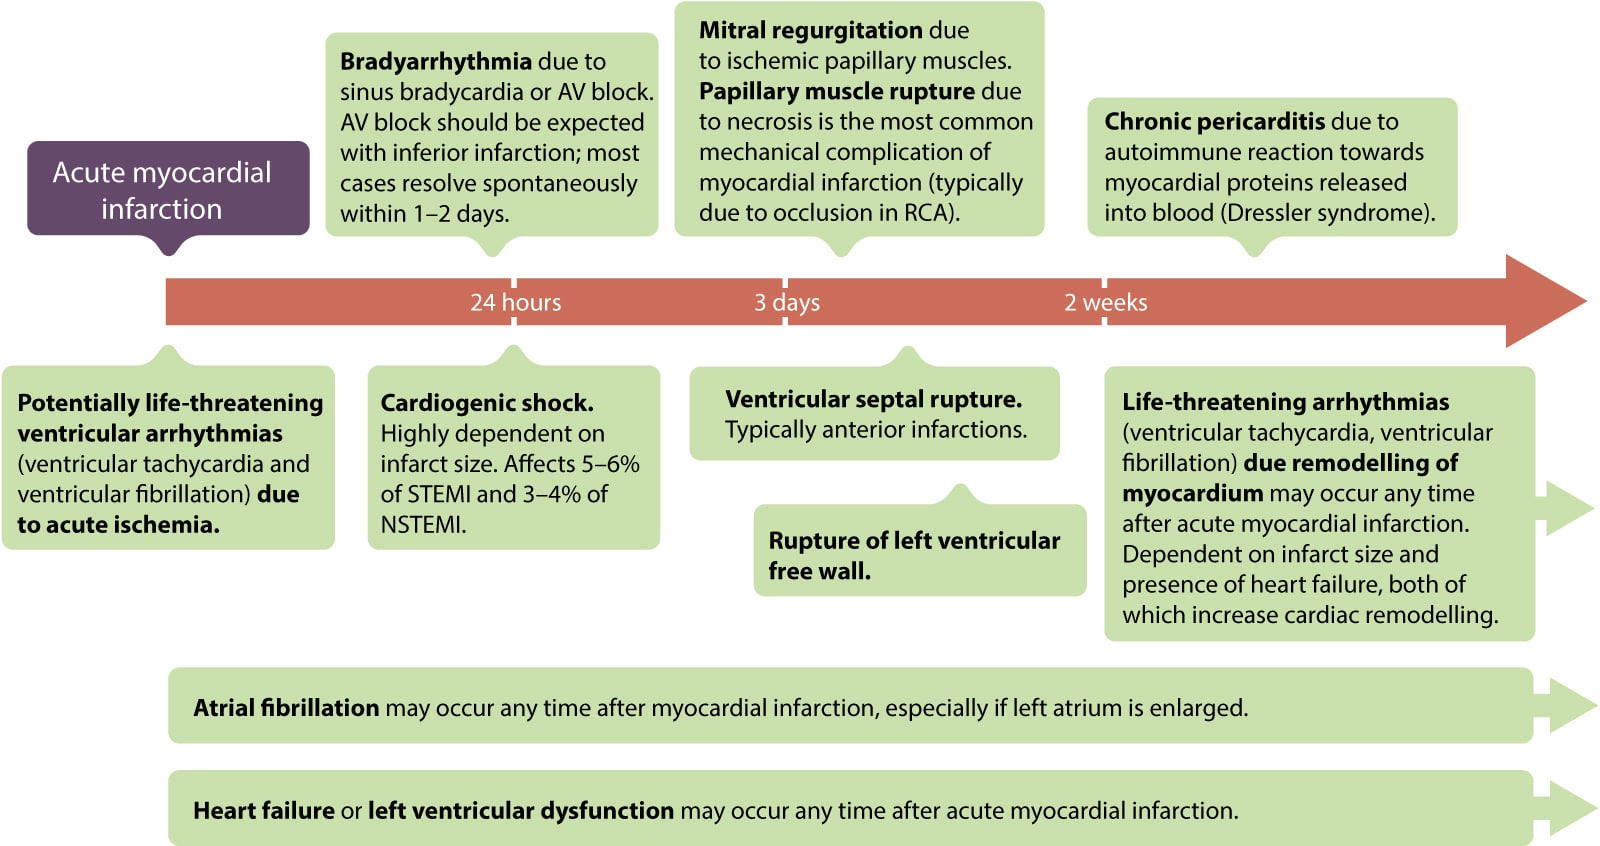 Figure 4. Acute, sub-acute and long-term complications of acute (STEMI) and myocardial infarction in general. RCA = Right Coronary Artery. Adapted from GW Reed et al, The Lancet (2017).